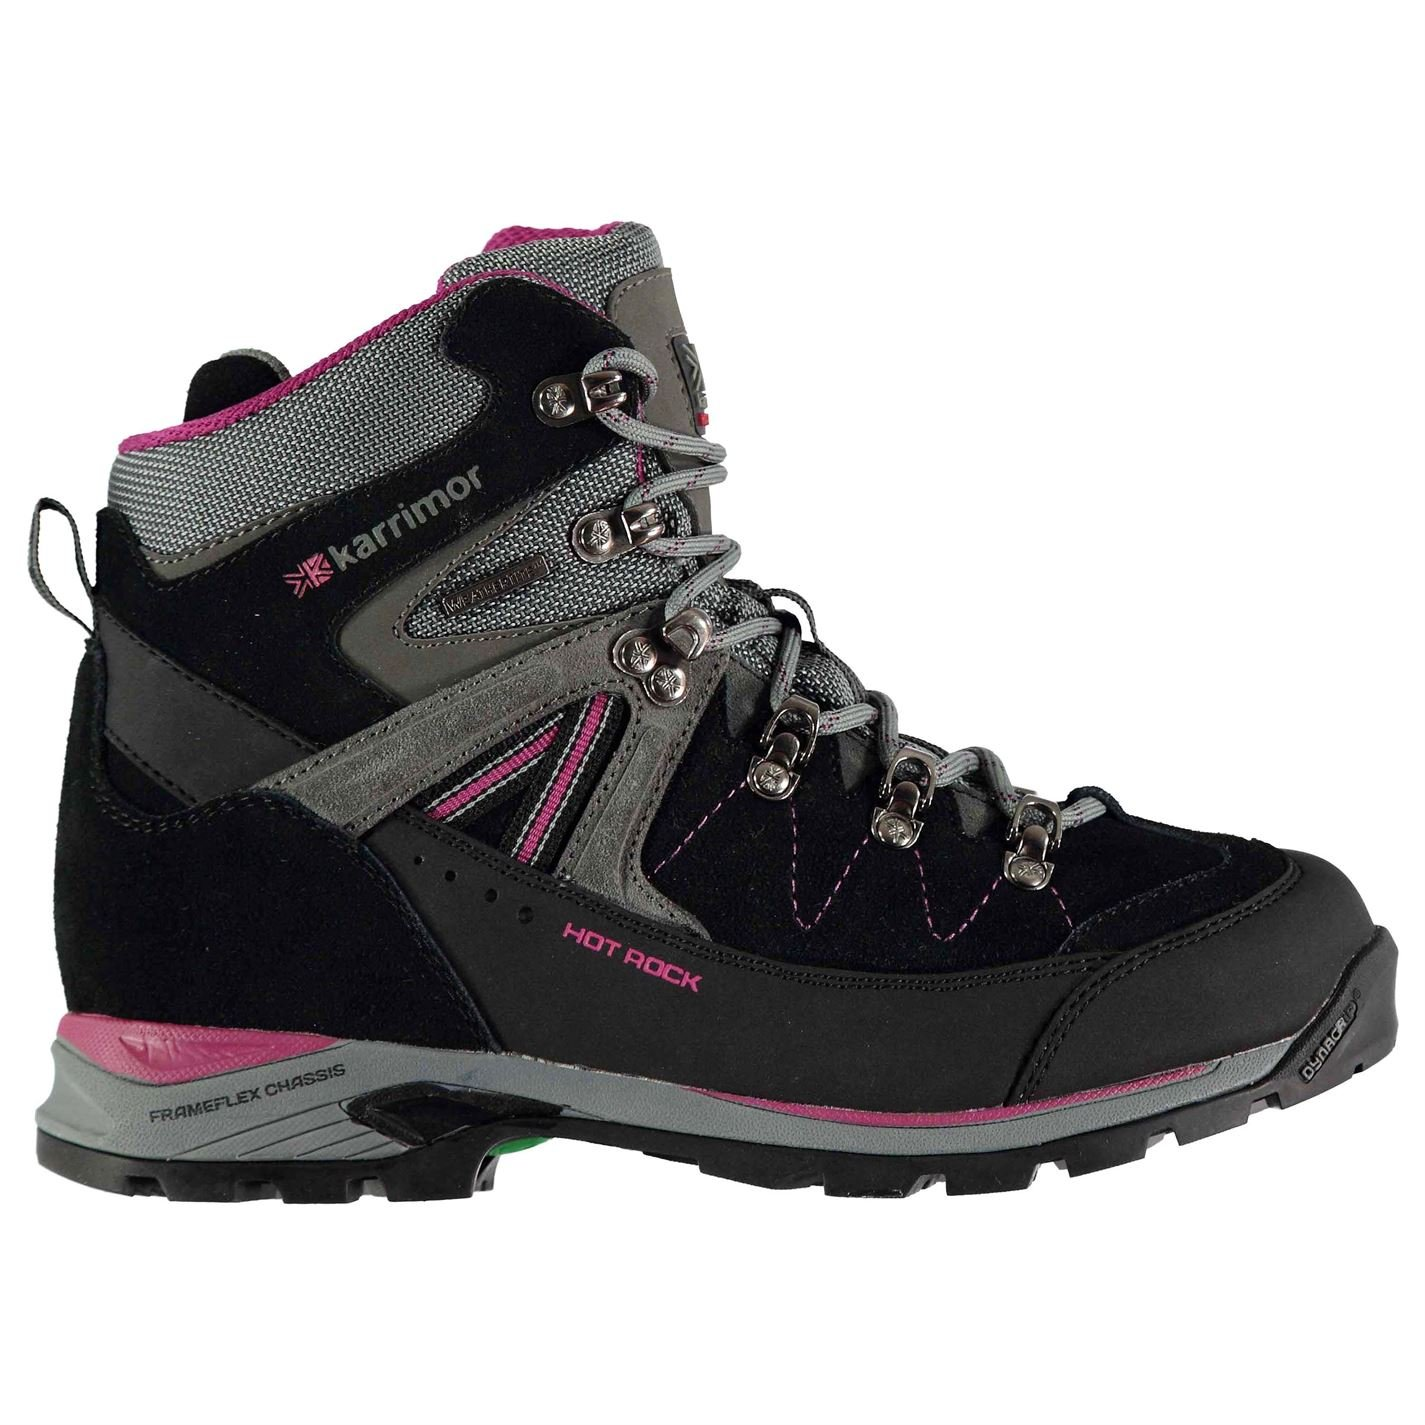 Womens Hot Rock Walking Boots Lace Up